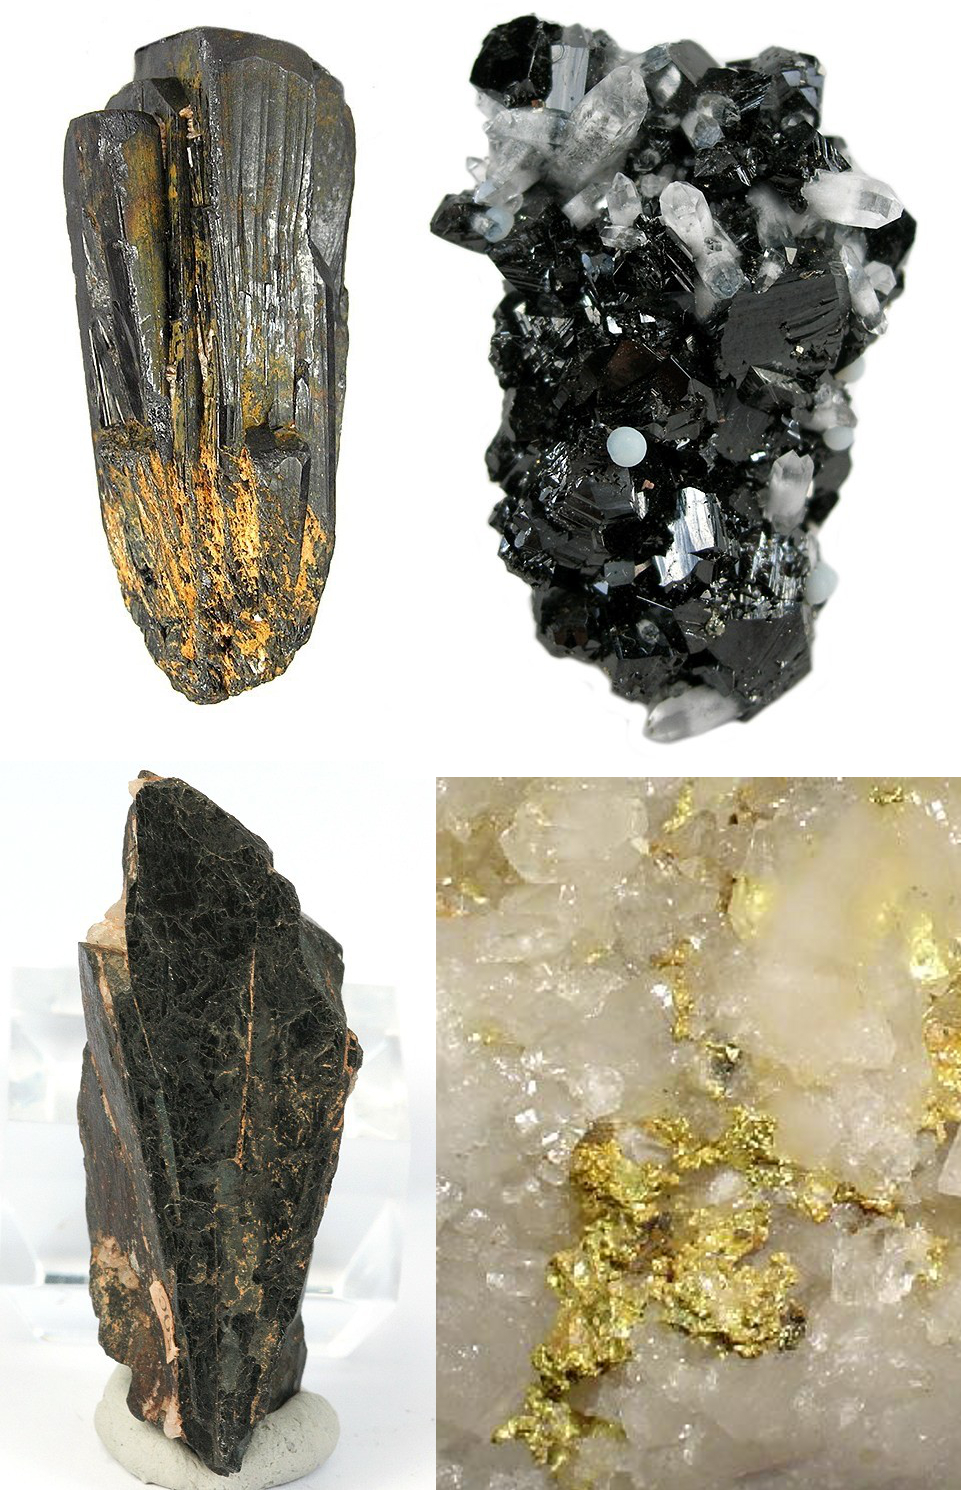 images of coltan, cassiterite, gold ore, and wolframite